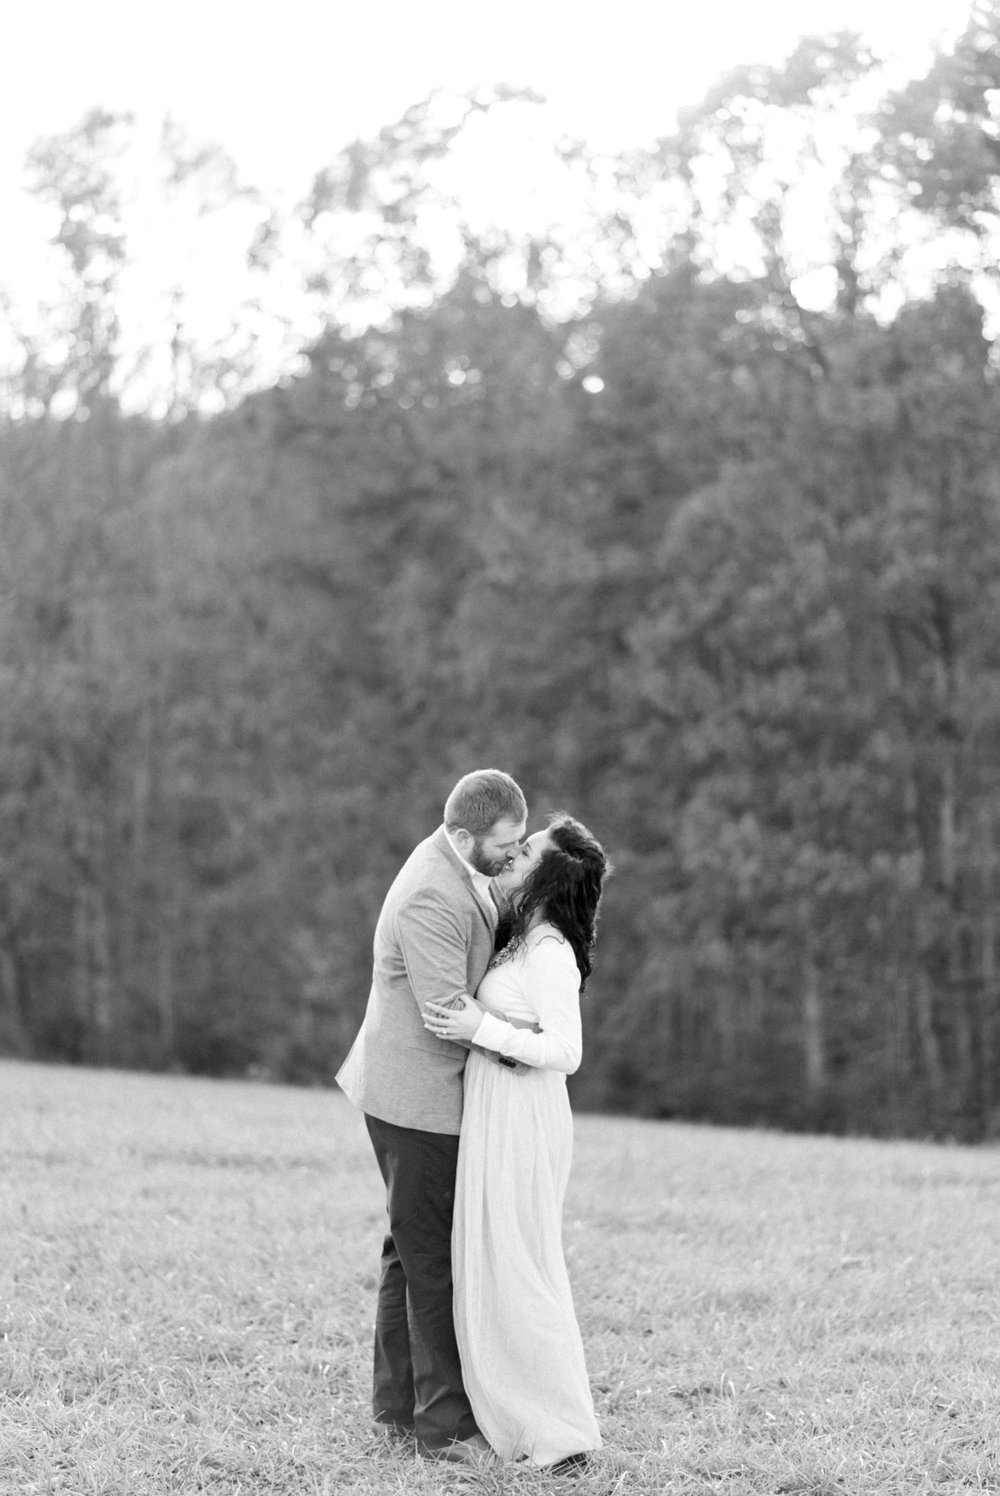 SorellaFarms_EngagementSession_VirginiaweddingPhotographer 30.jpg